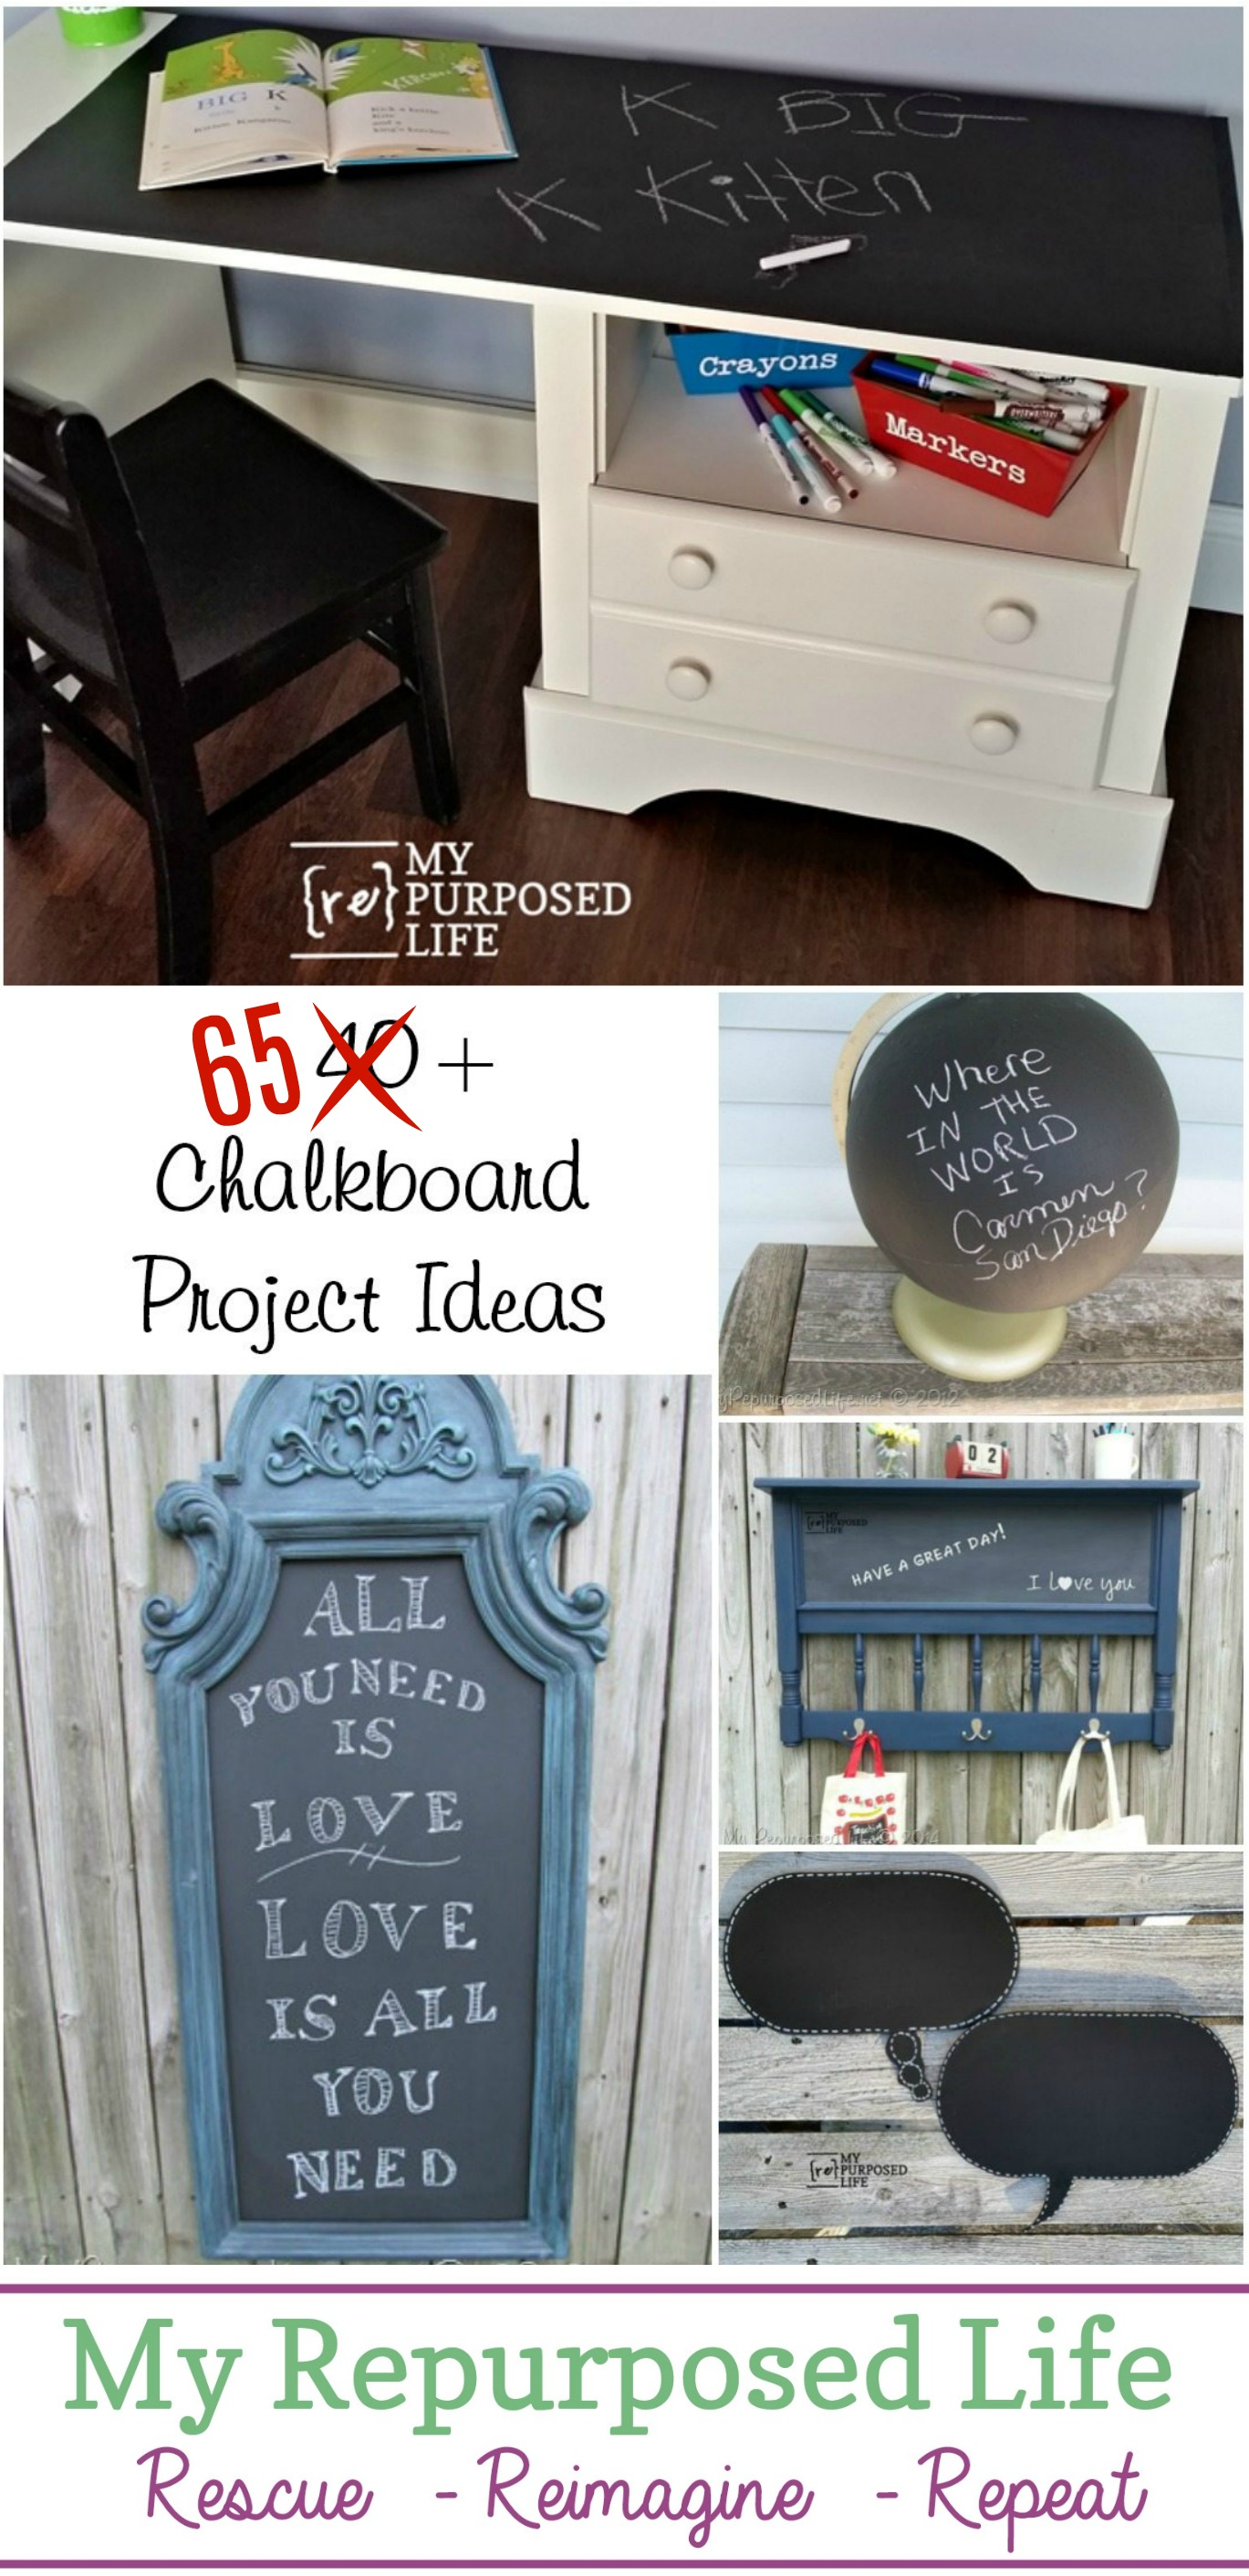 I have a collection of 65+ chalkboard ideas to inspire you to think outside the box with thrift store finds. Maybe you have this stuff already on hand? #MyRepurposedLife #repurposed #chalkboard #project #ideas via @repurposedlife